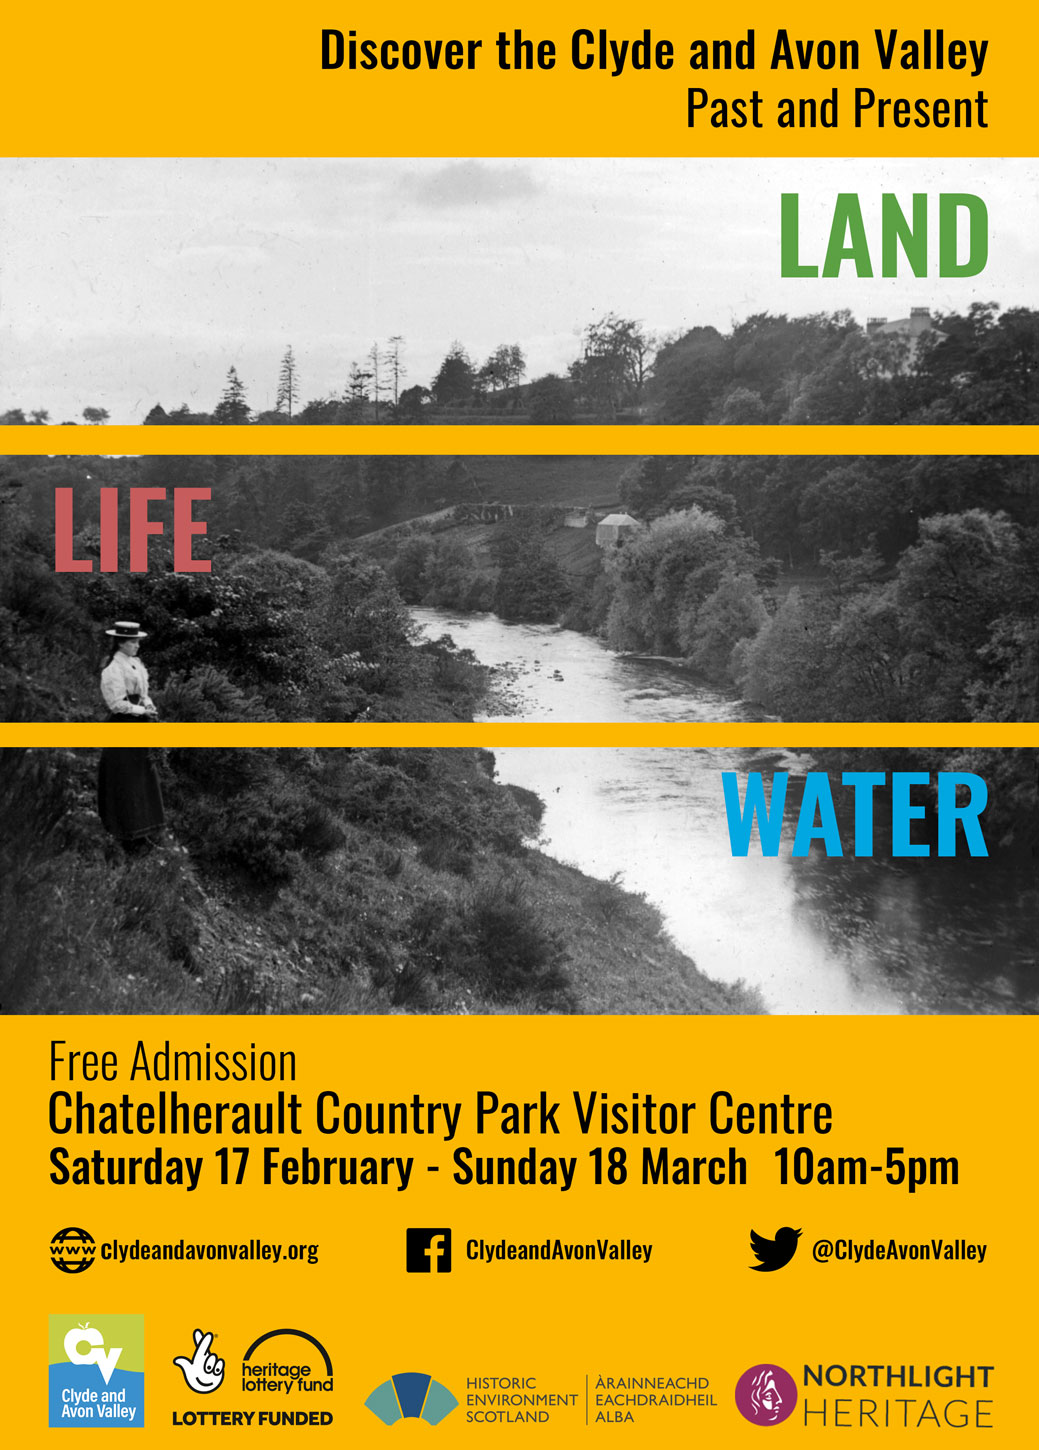 Land, Life, Water: the Clyde and Avon Valley Past and Present exhibition, Saturday 17 February - Sunday 18 March, Chatelherault Country Park